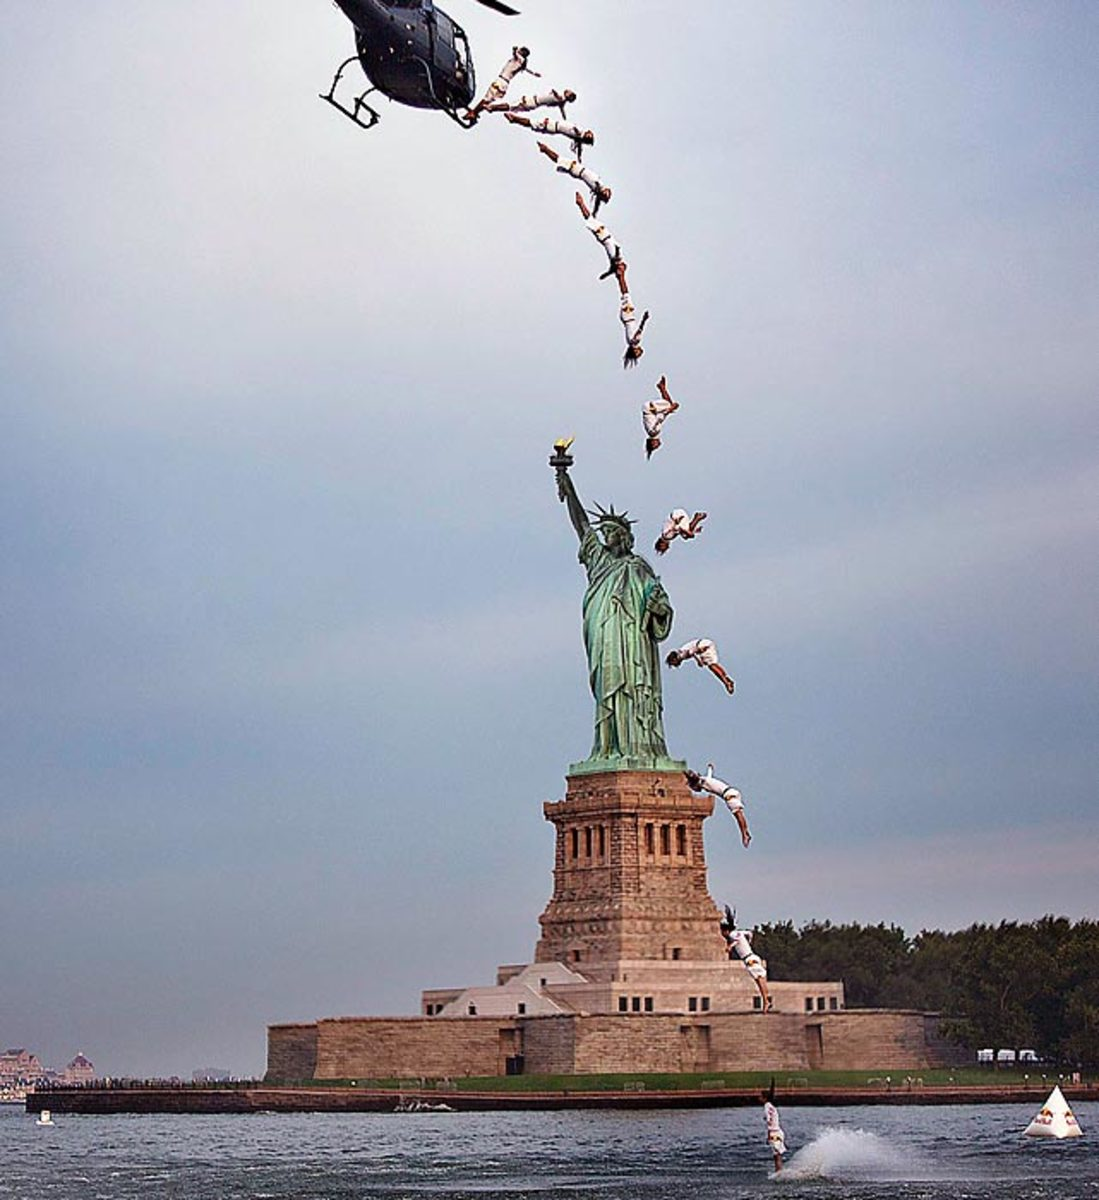 130819164002-red-bull-cliff-diving---statue-of-liberty---2-single-image-cut.jpg